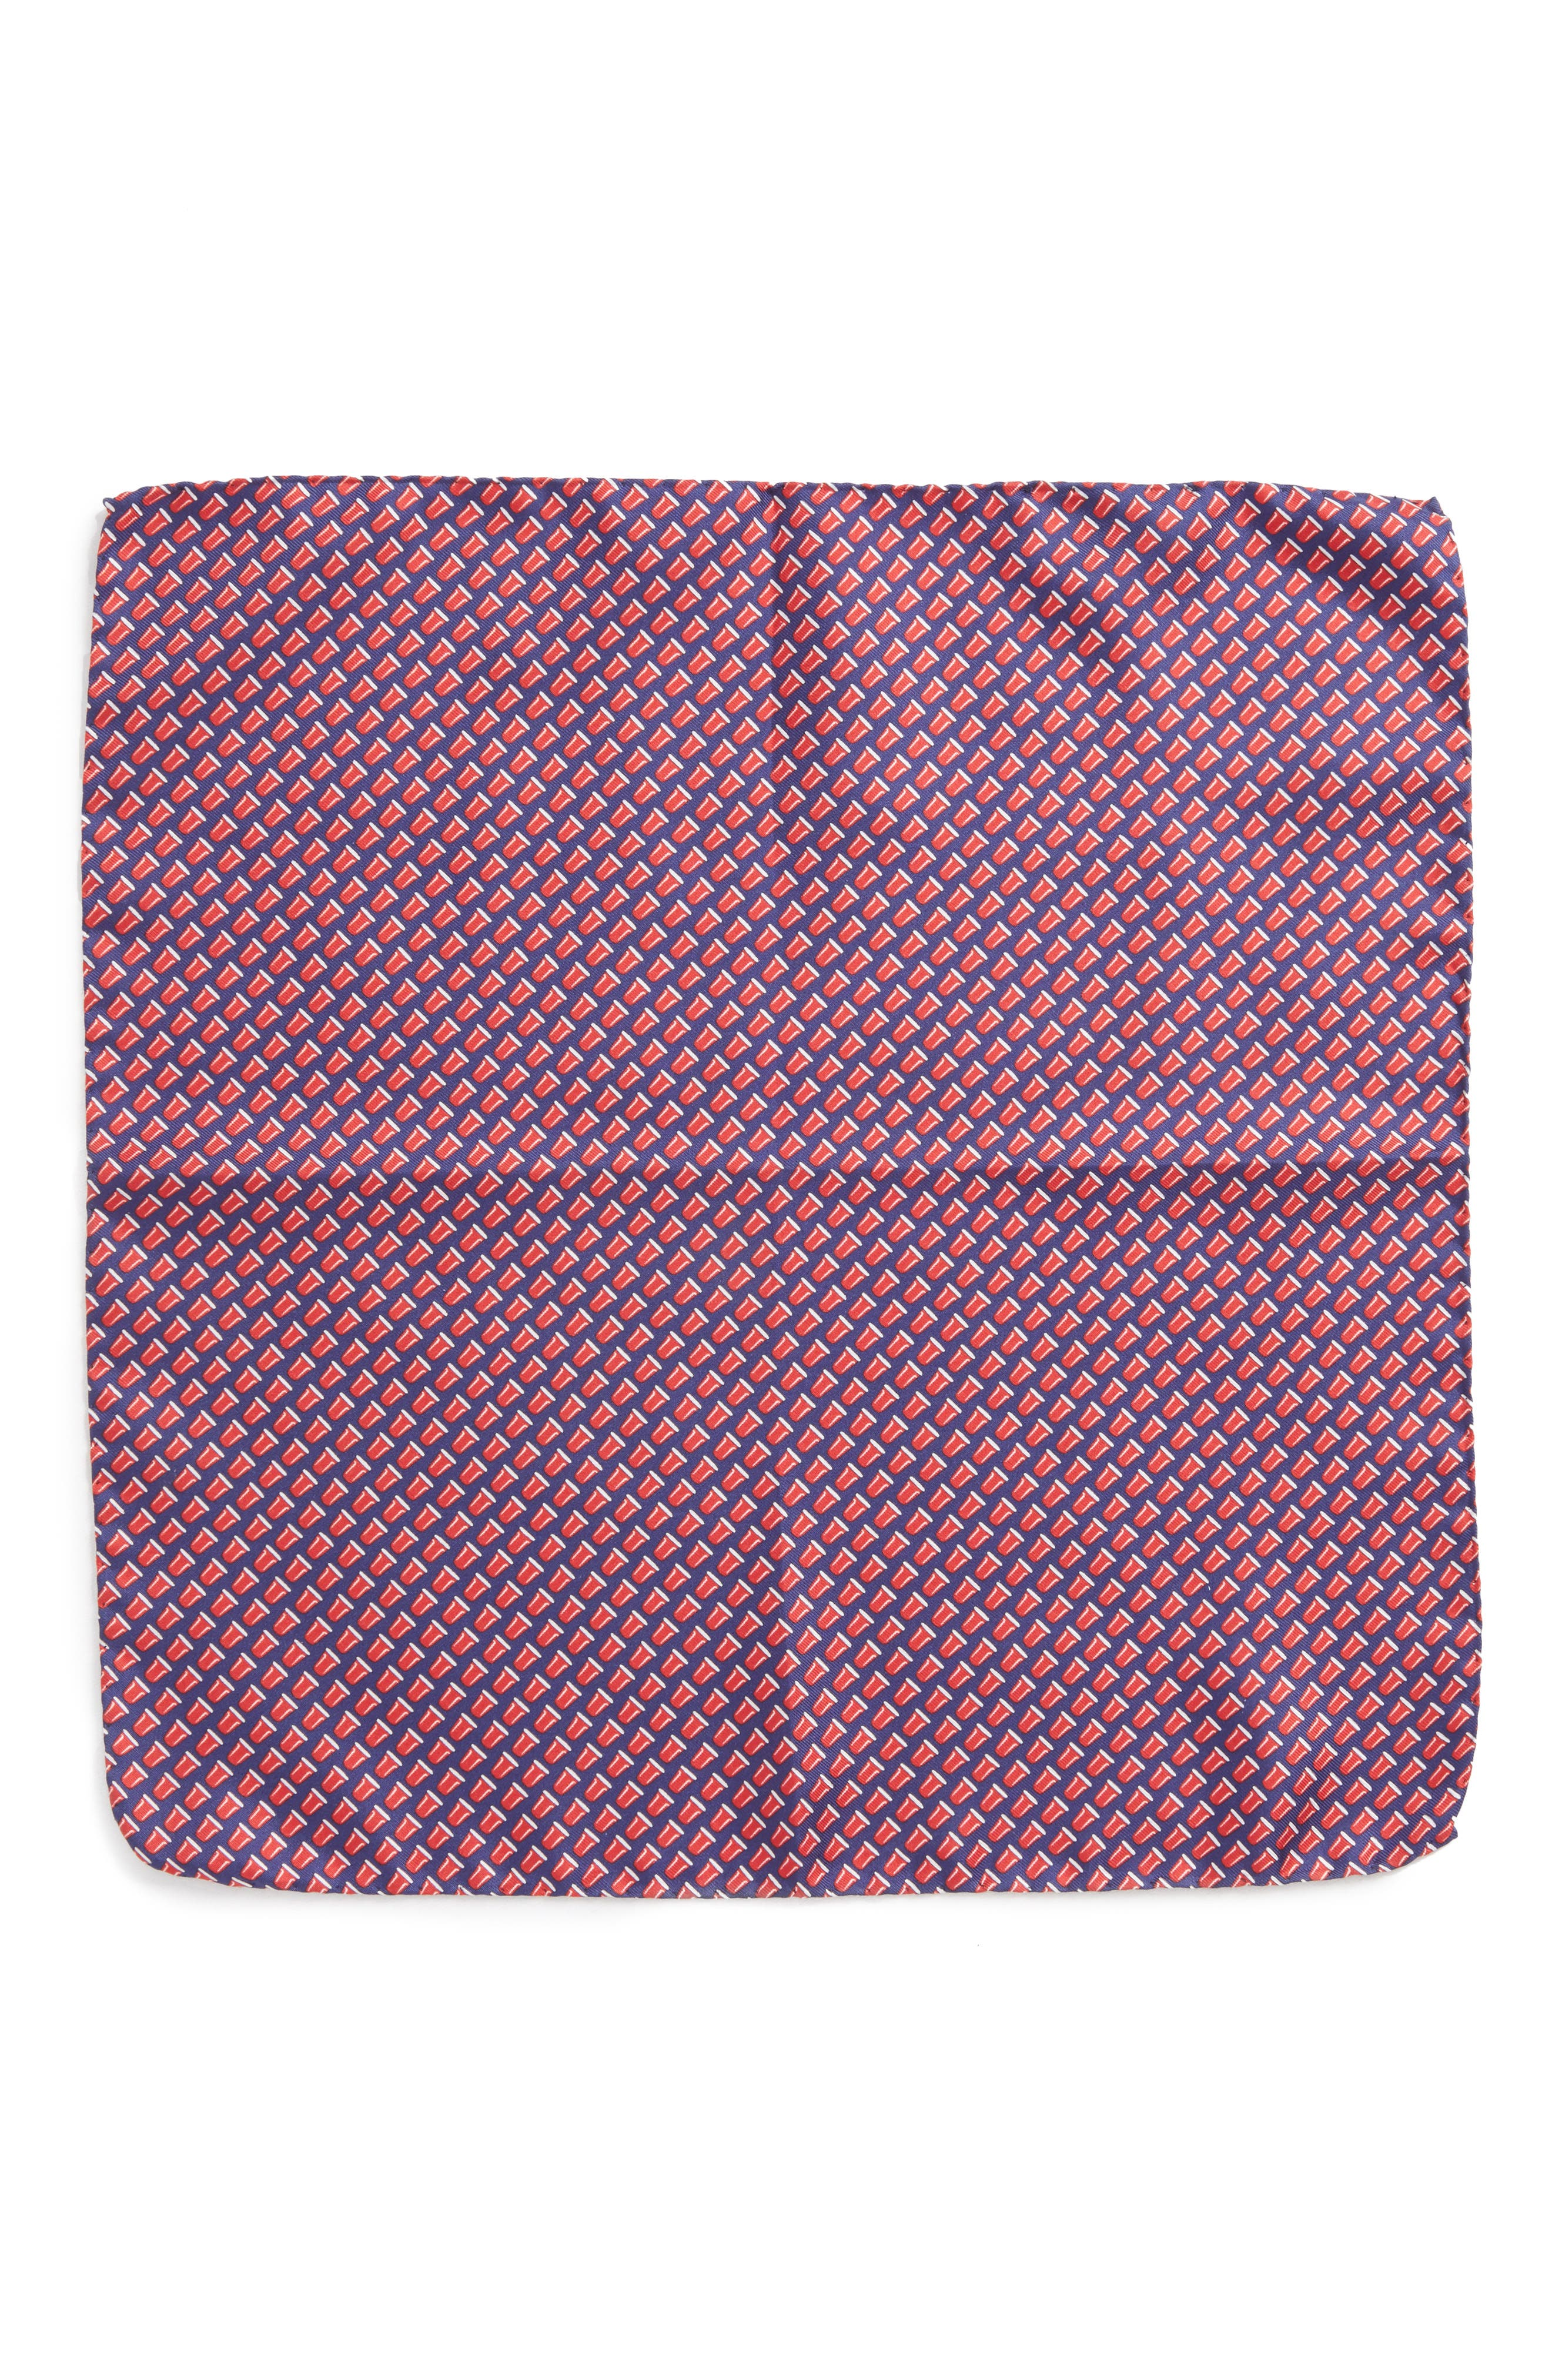 Re-Rack Silk Pocket Square,                             Alternate thumbnail 2, color,                             Navy